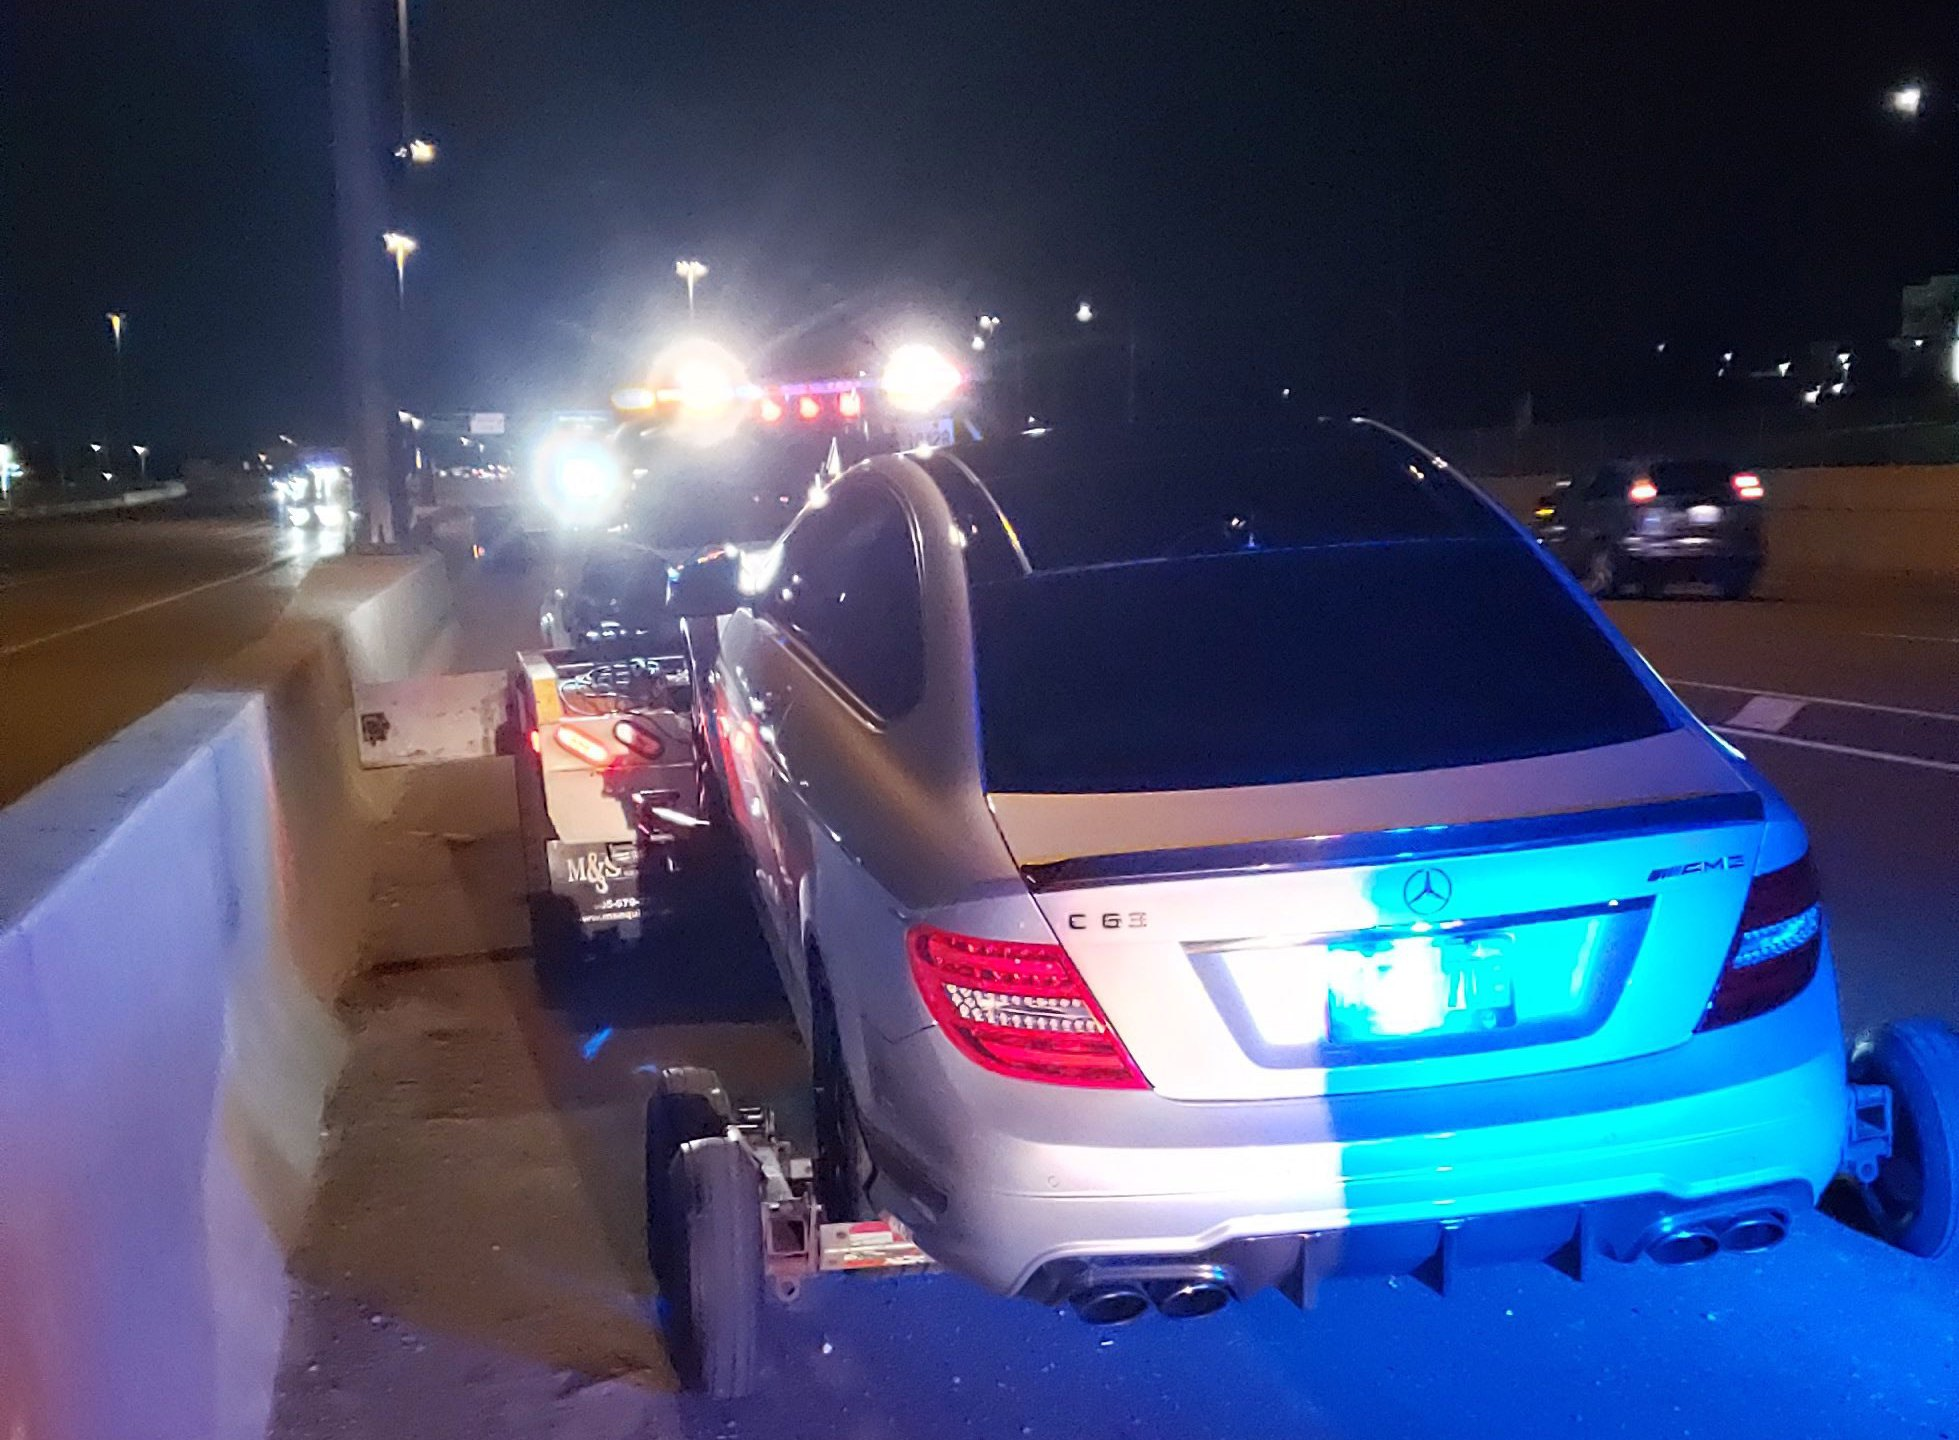 A 19-year-old in Canada was charged with street racing after he was caught driving 191 mph. (Ontario Provincial Police)